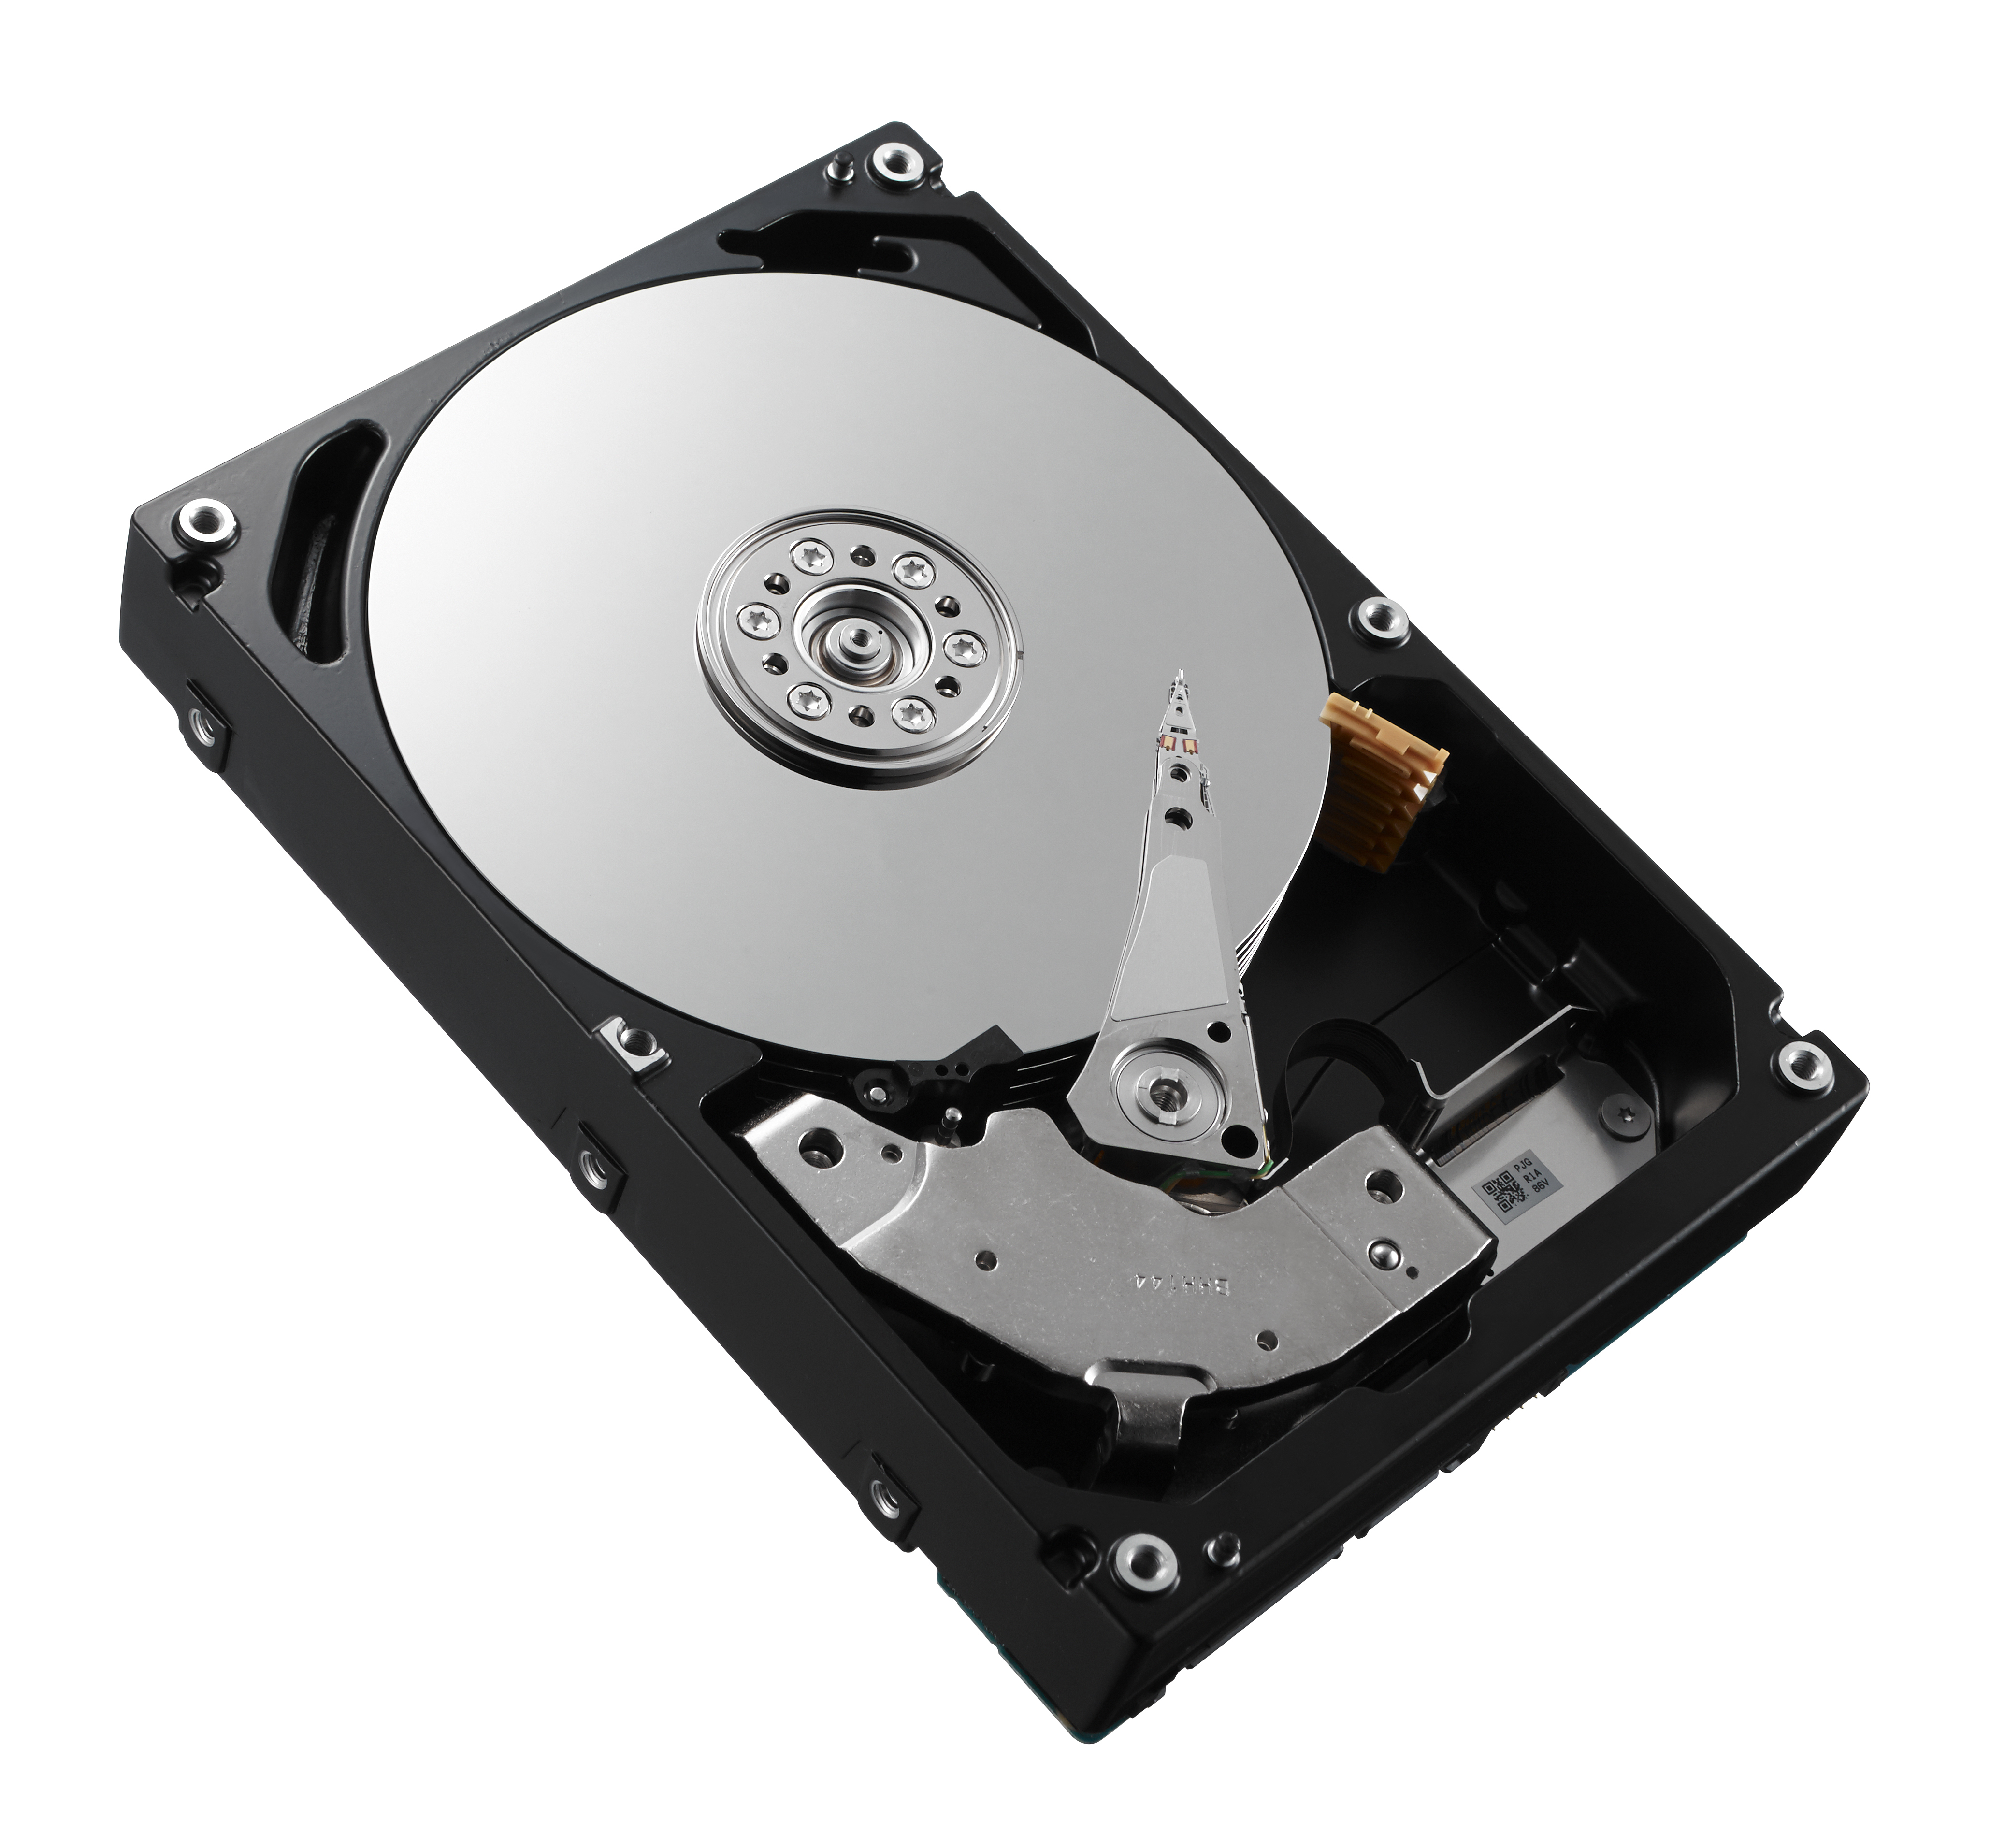 """9ZM273-150 DELL 1Tb 7.2K Near Line 6Gbps SAS 3.5"""""""" HP HDD Refurbished with 1 year warranty"""